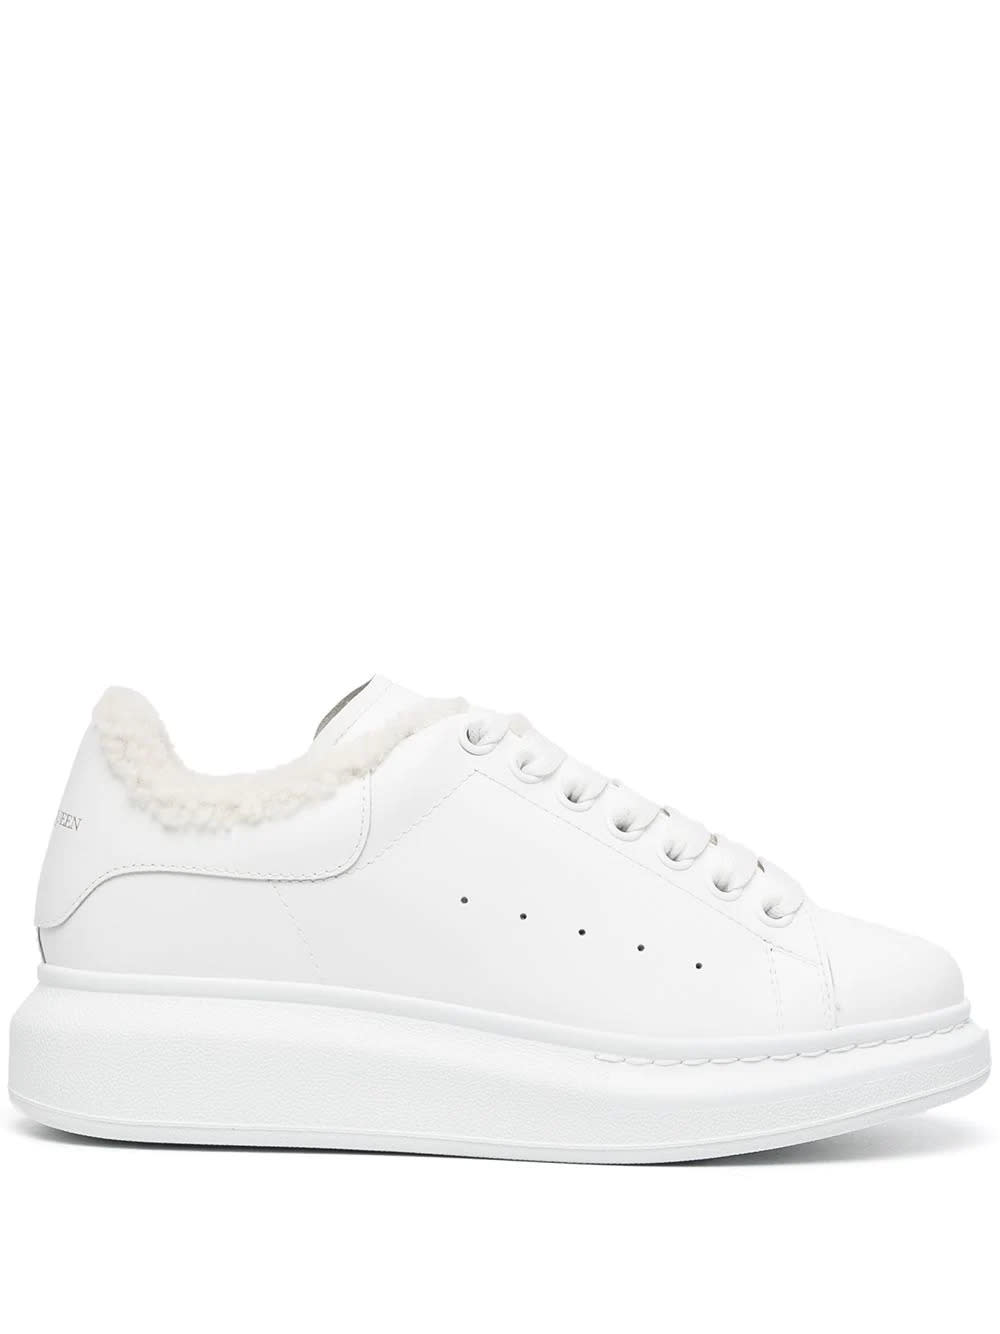 Alexander McQueen Woman White Oversize Sneakers With Shearling Lining